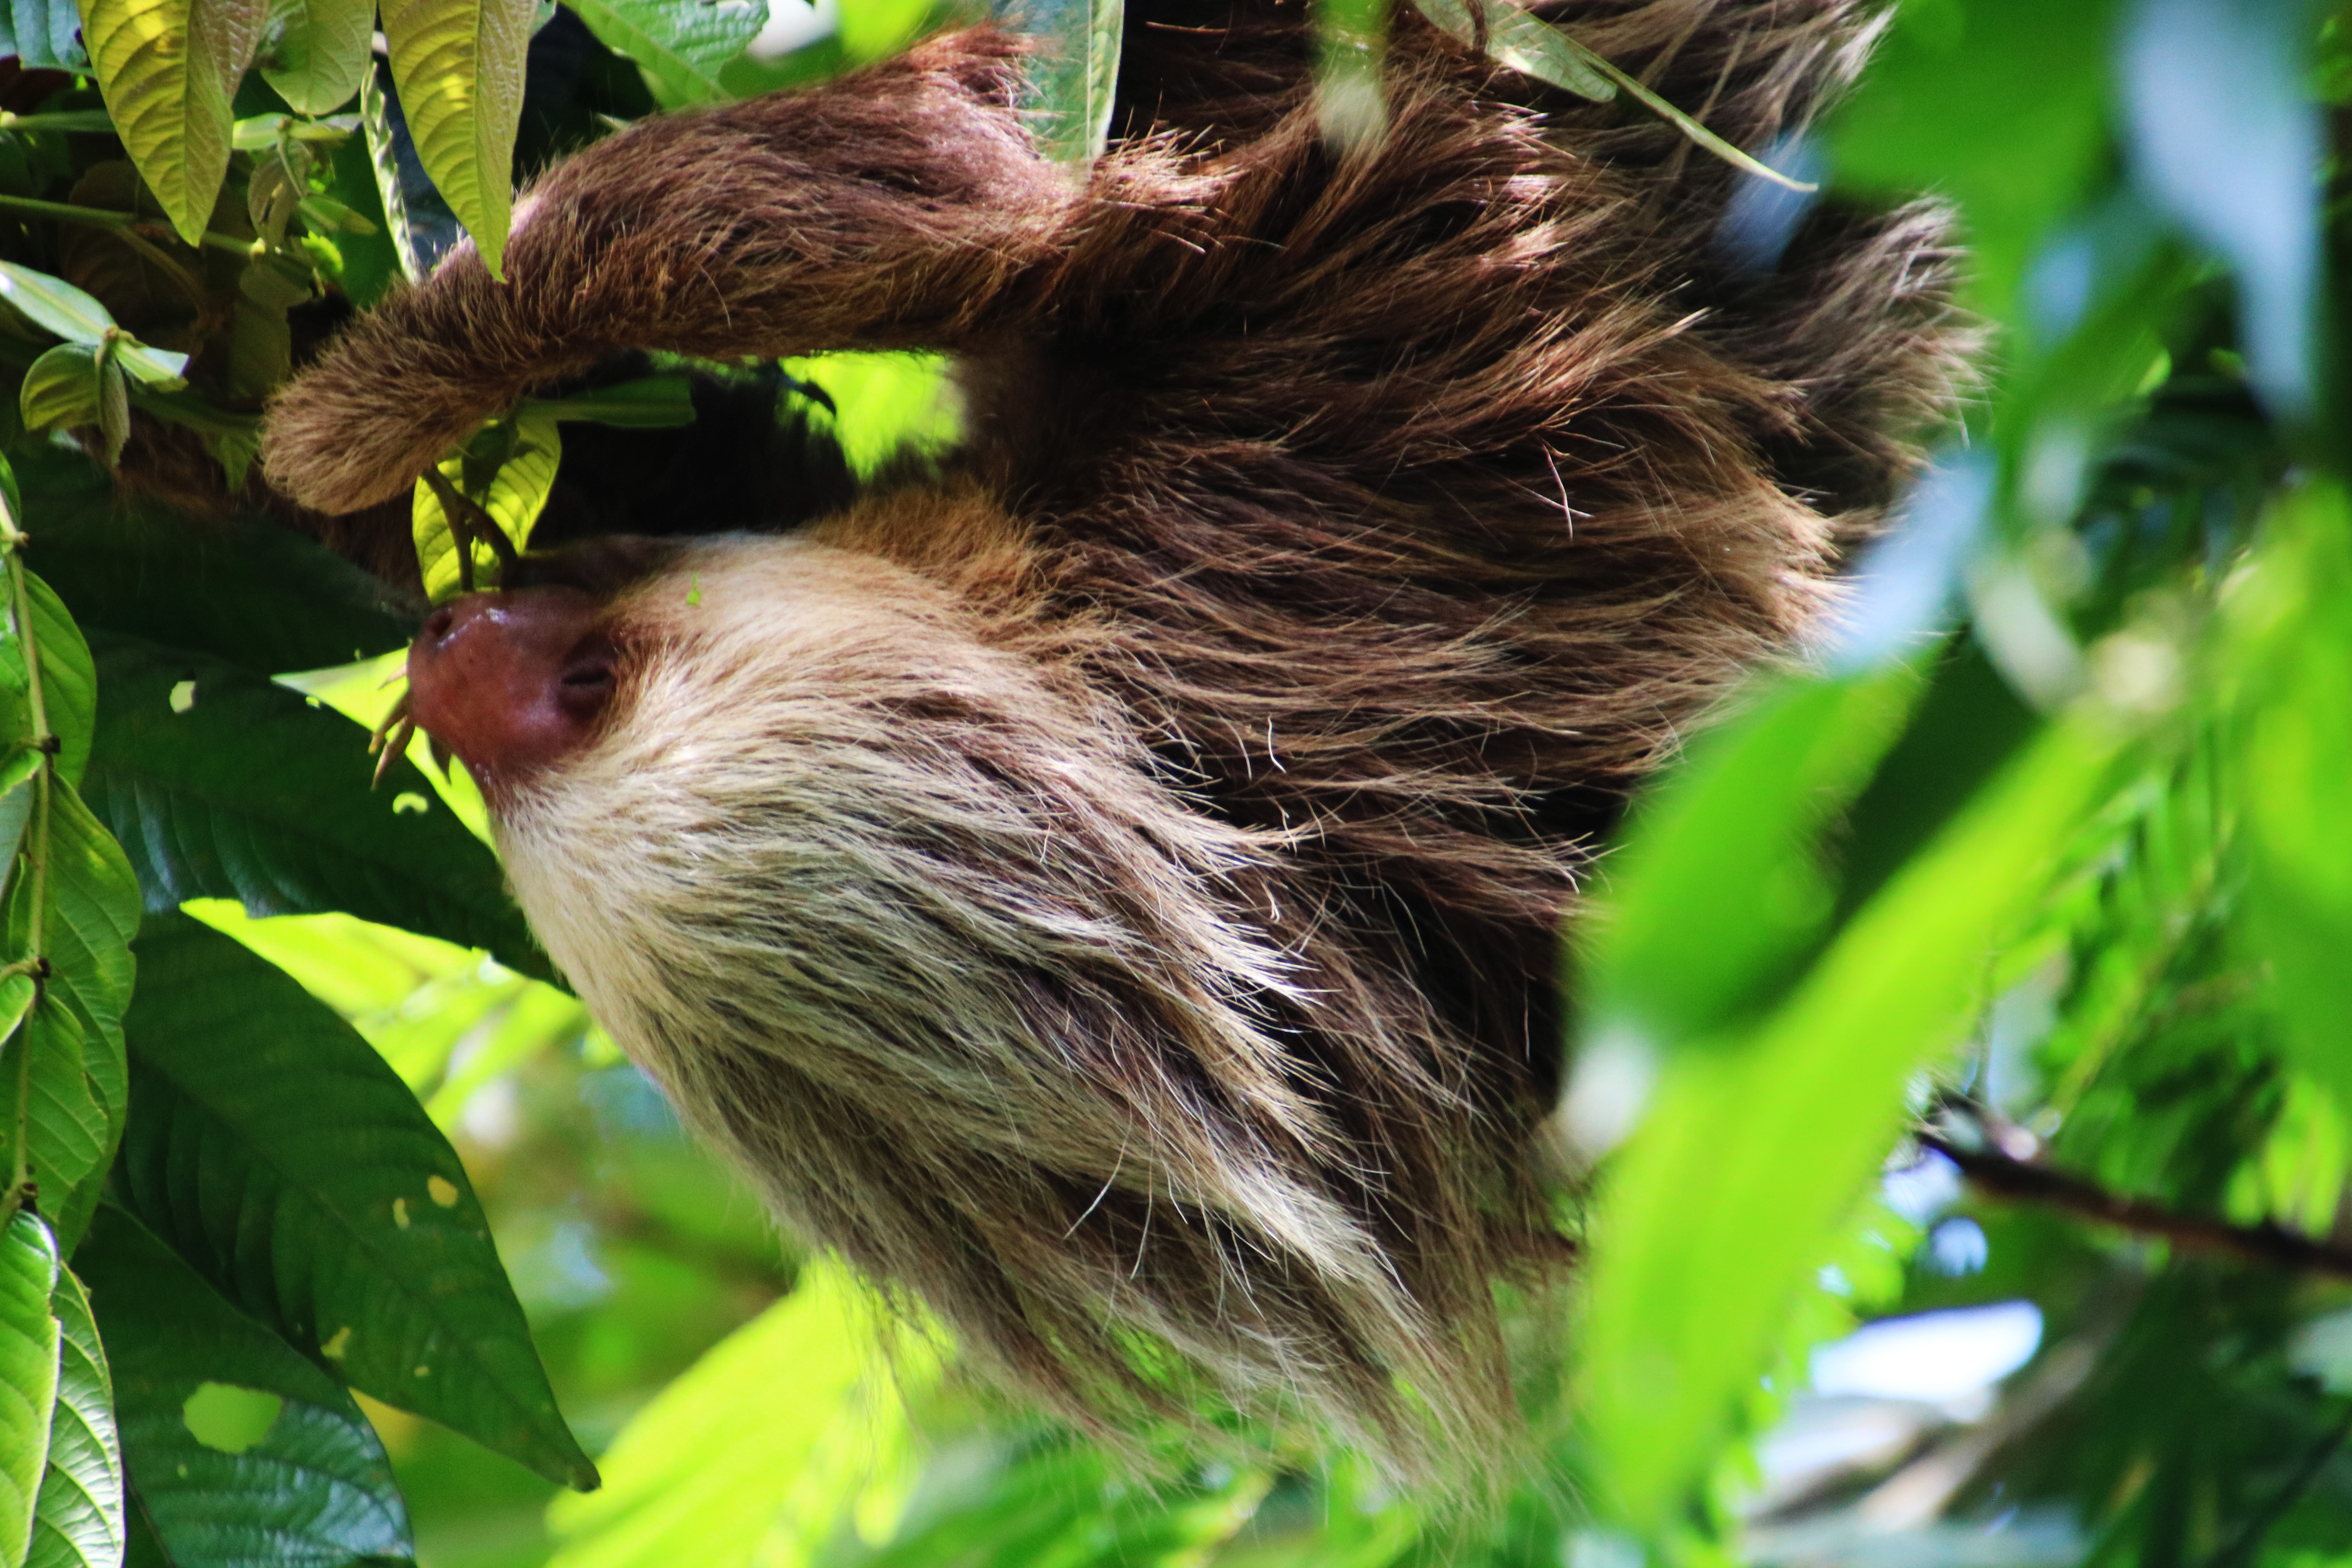 70-two toed sloth hanging out for lunch